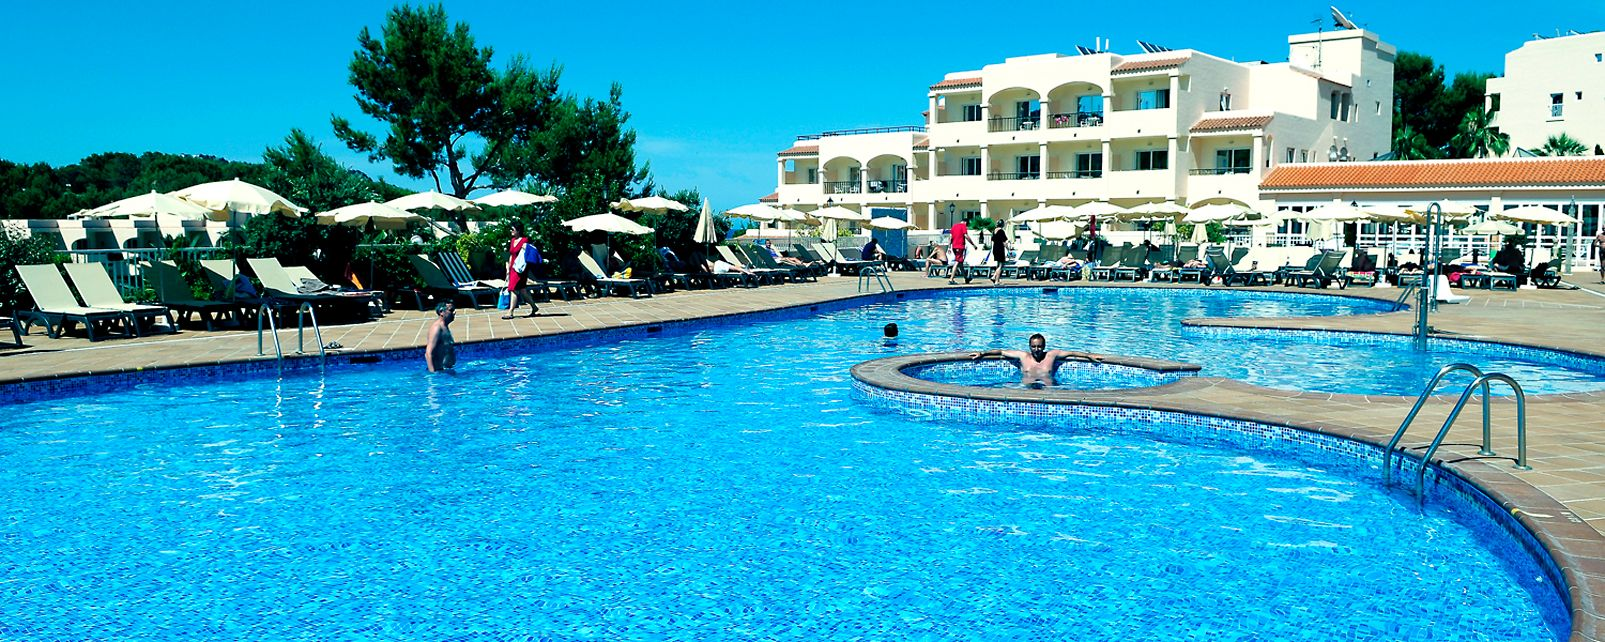 Hotel Village Ibiza Booking